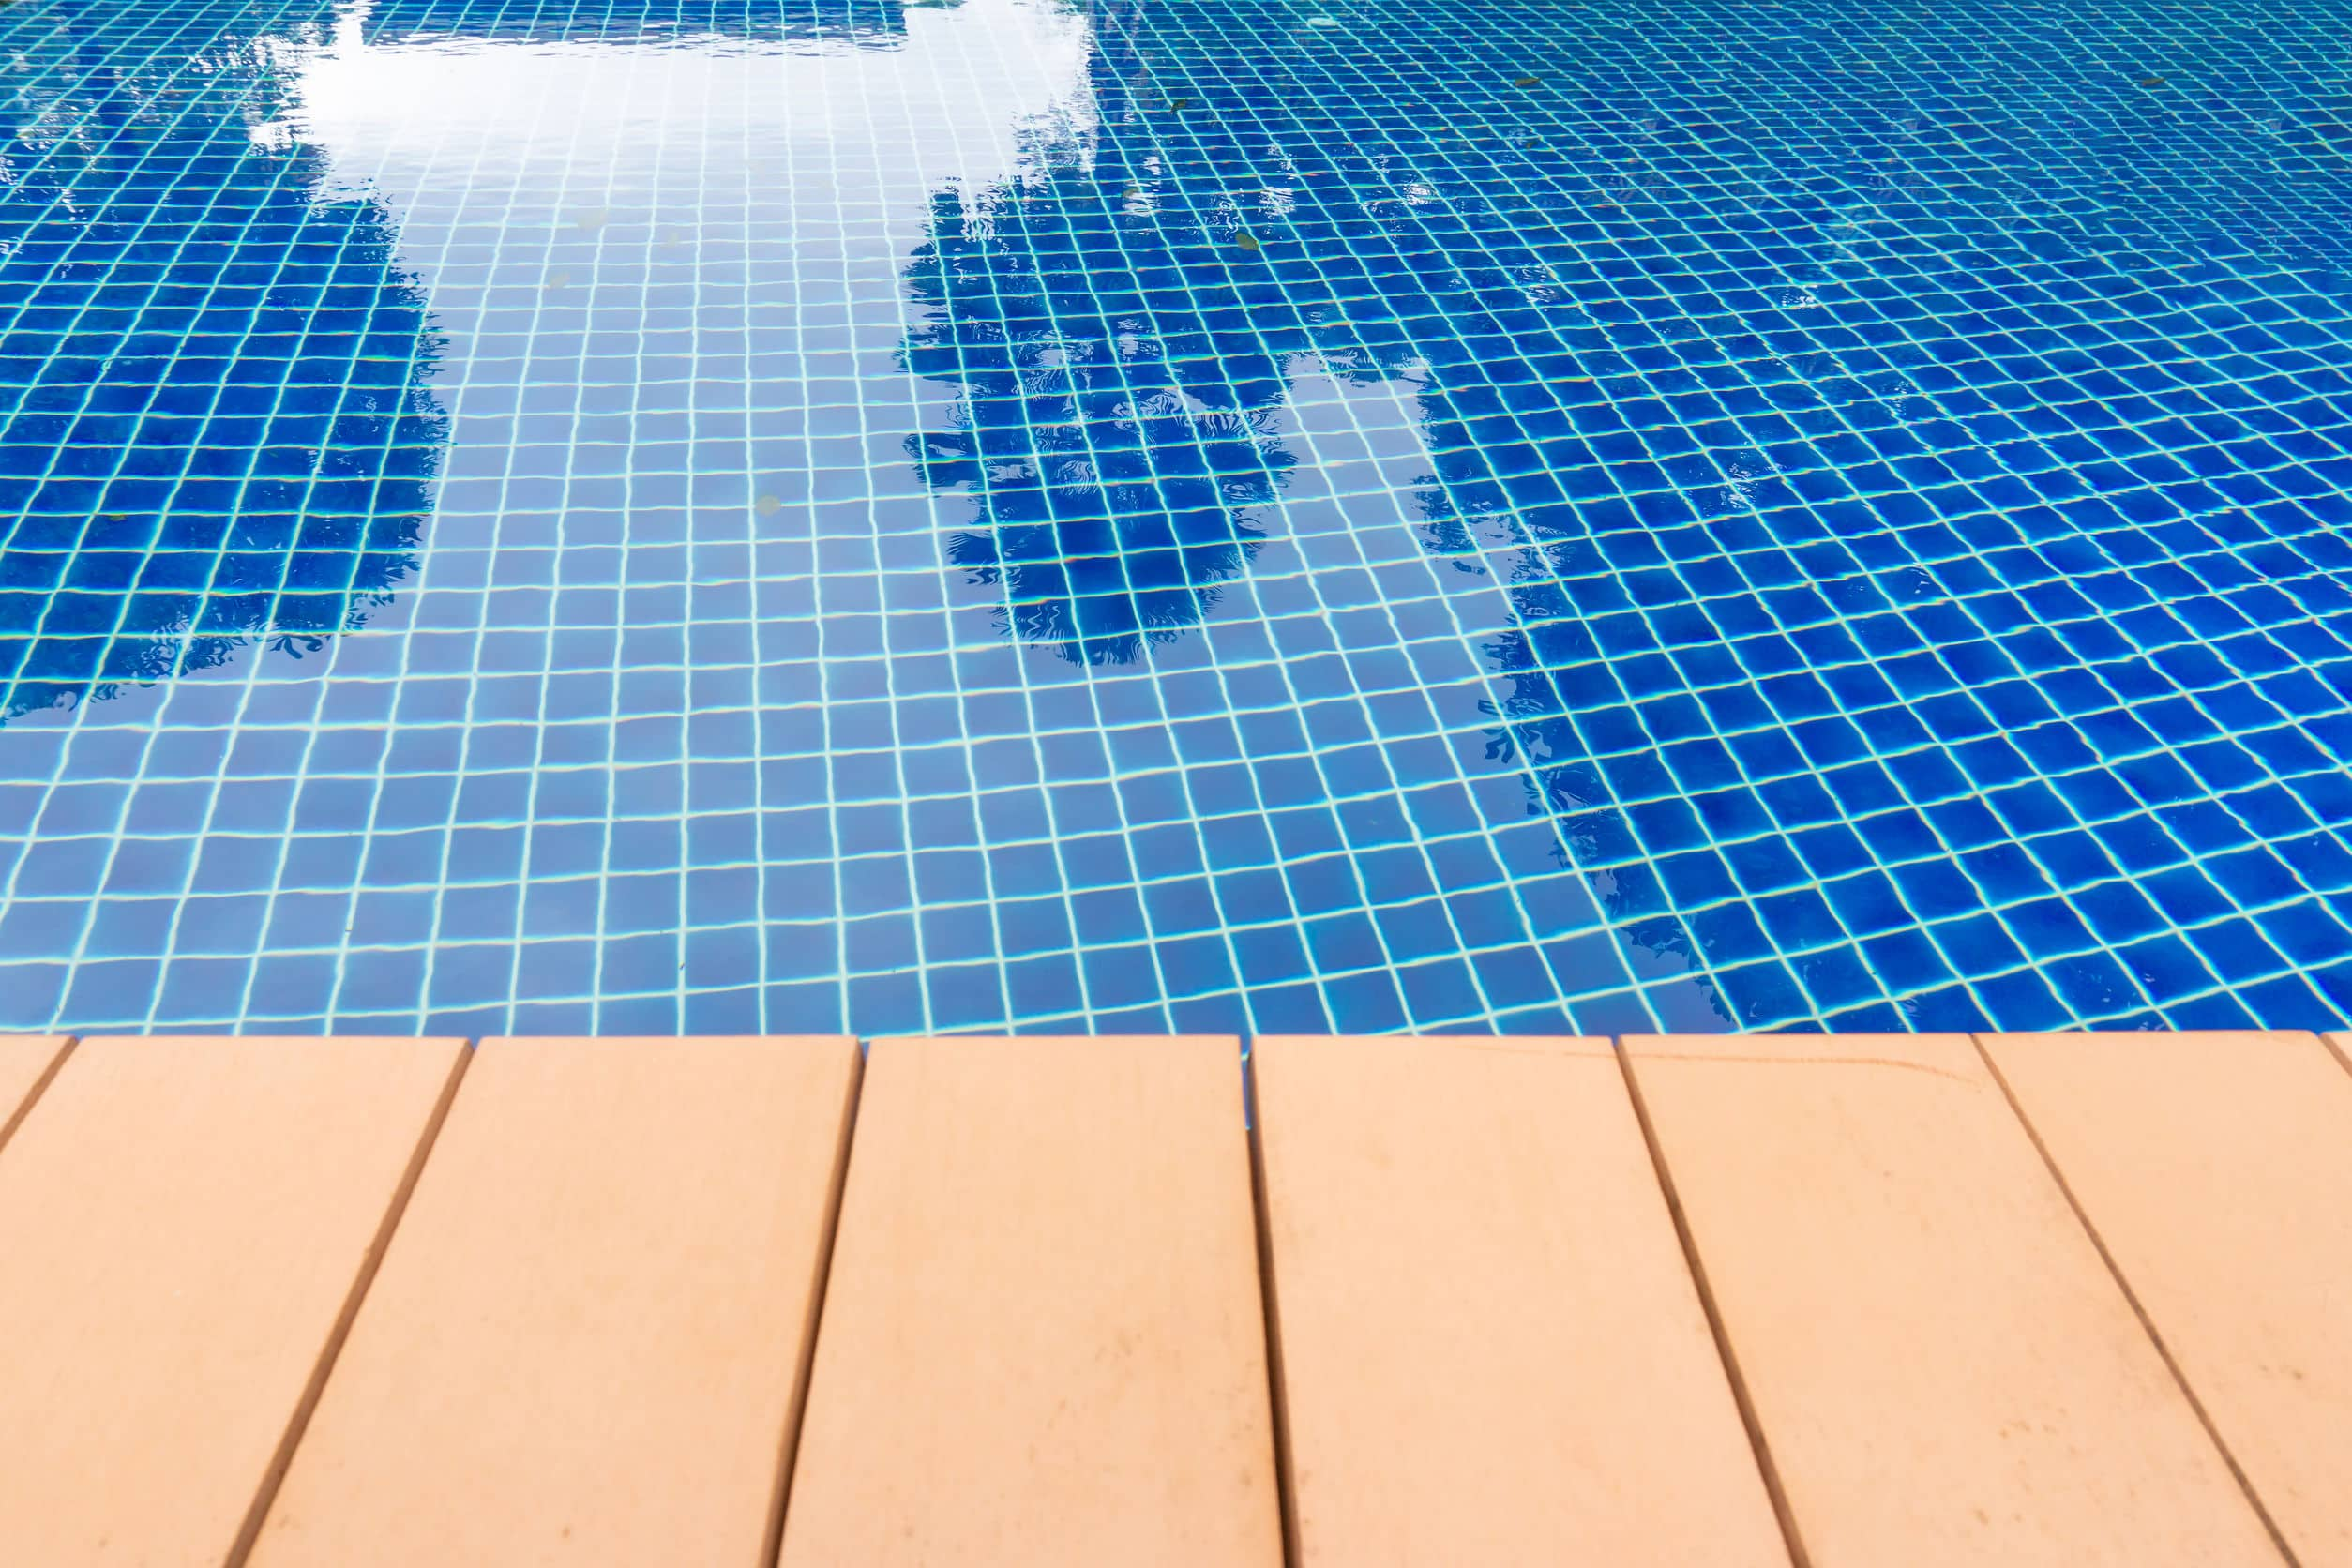 Affordable Pool Resurfacing. A phot of a resurfaced pool and deck